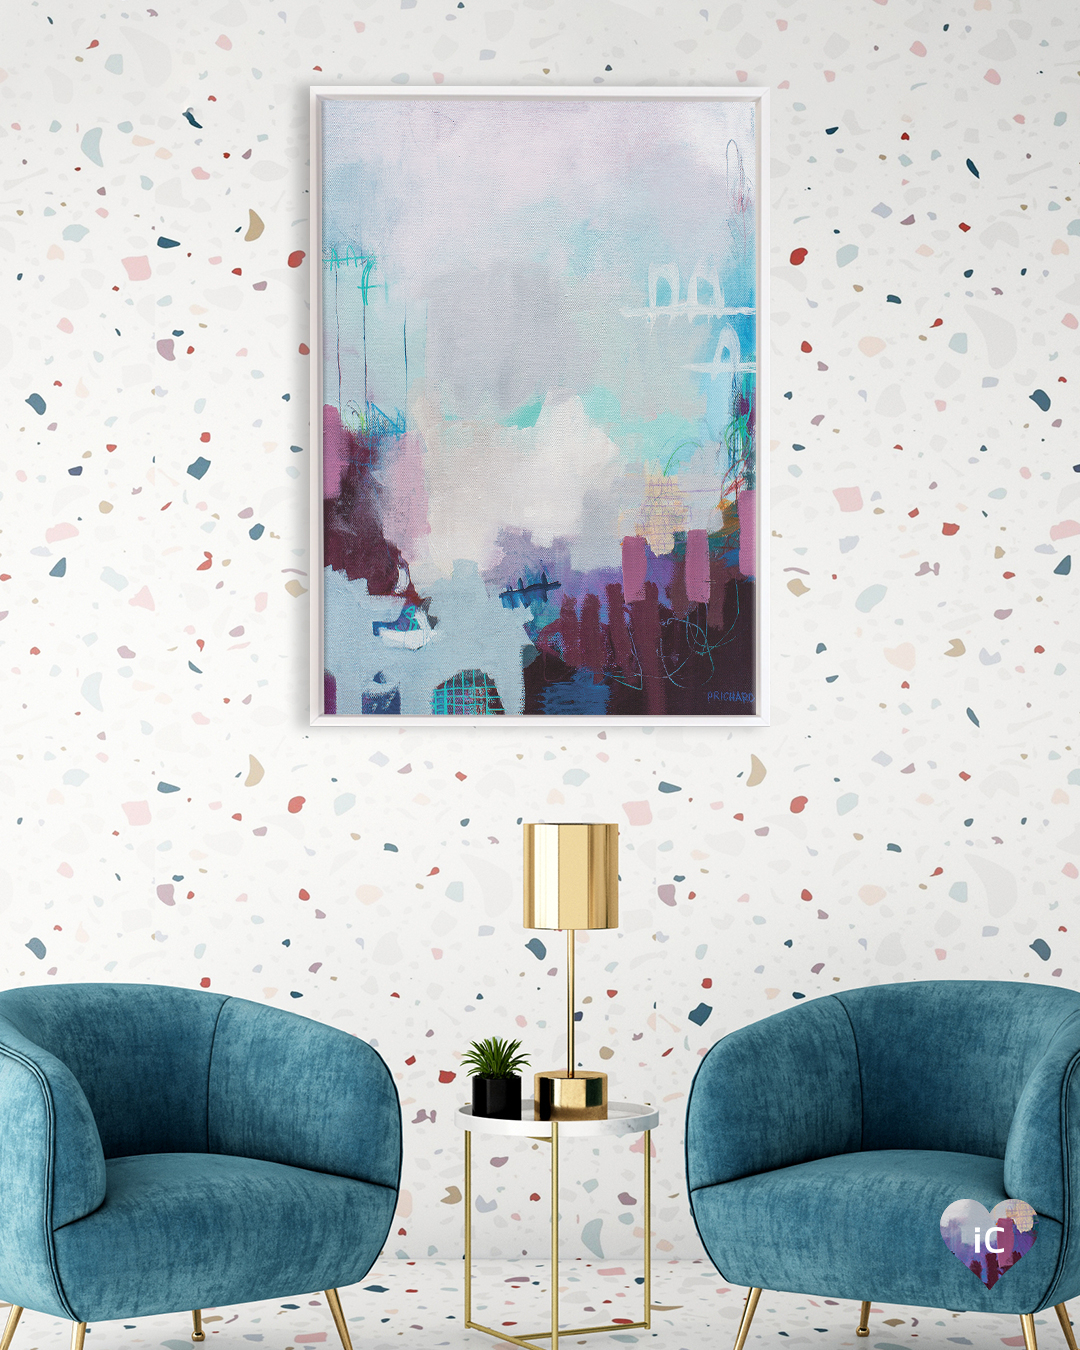 Abstract image in dark purple, blue, light blue, white and pink, framed in white on a terrazzo patterned wall in a room with two blue chairs